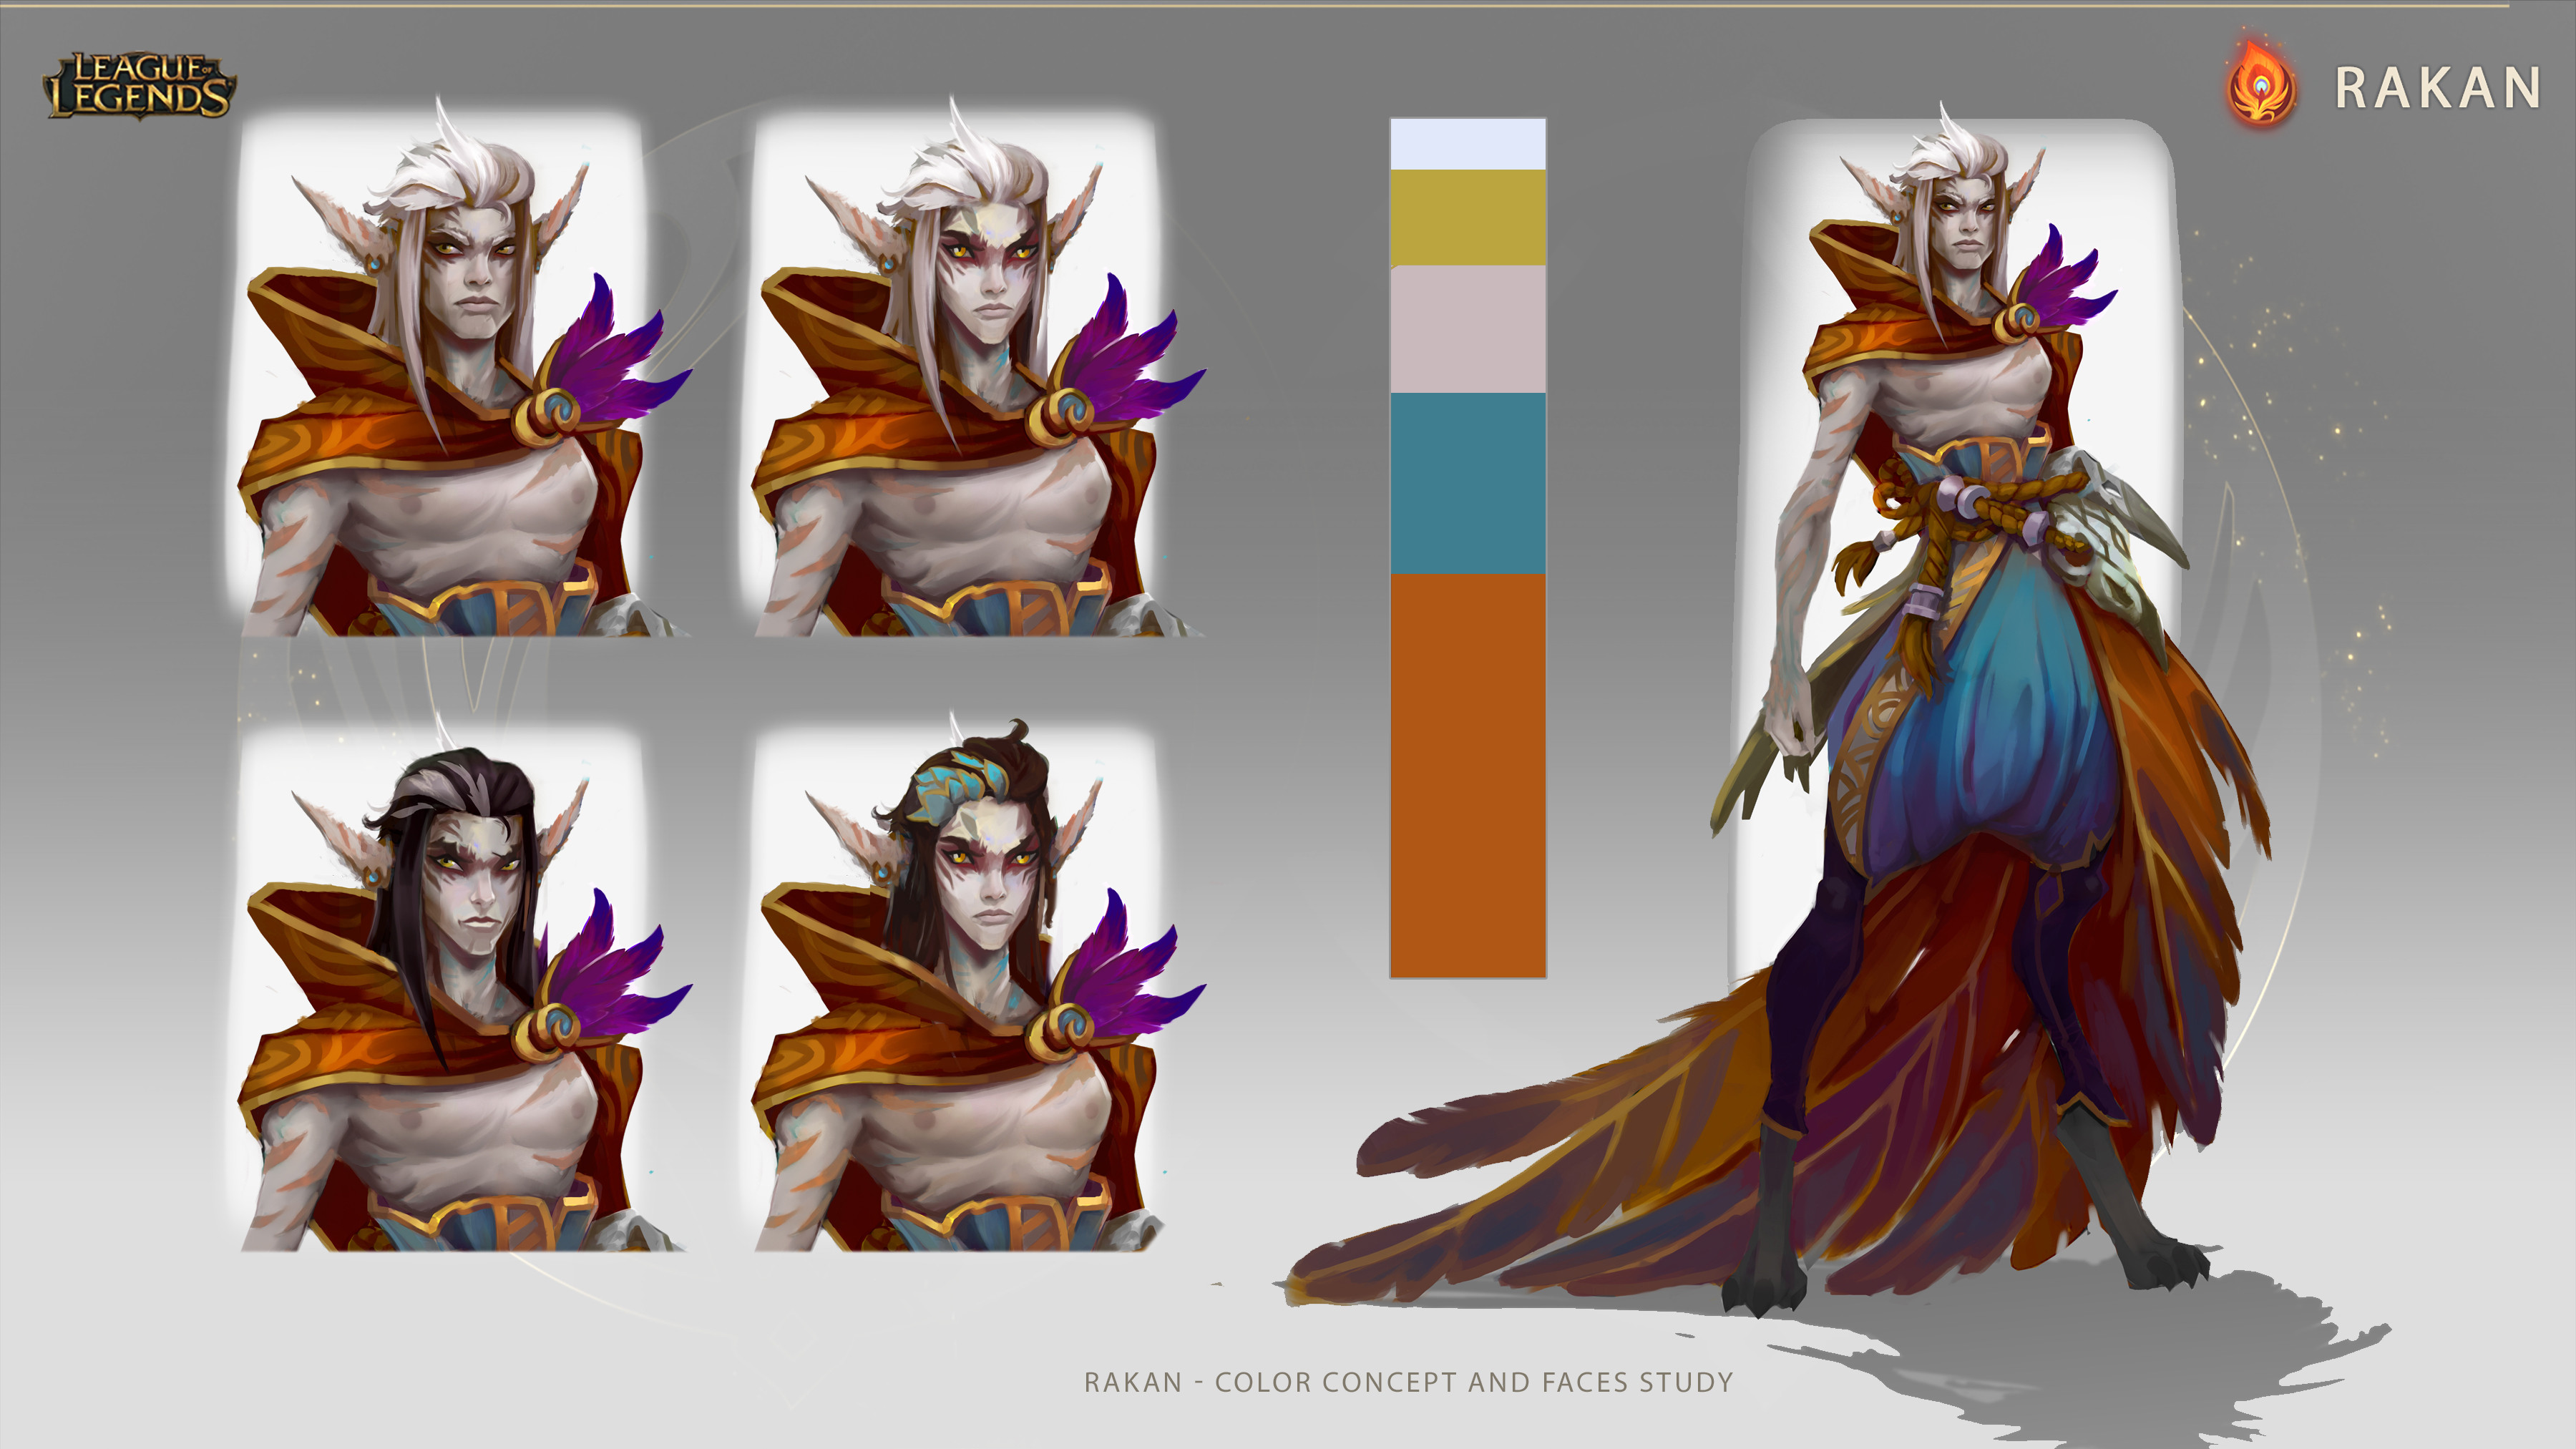 Some faces iterations for Rakan and exploring his color palette.